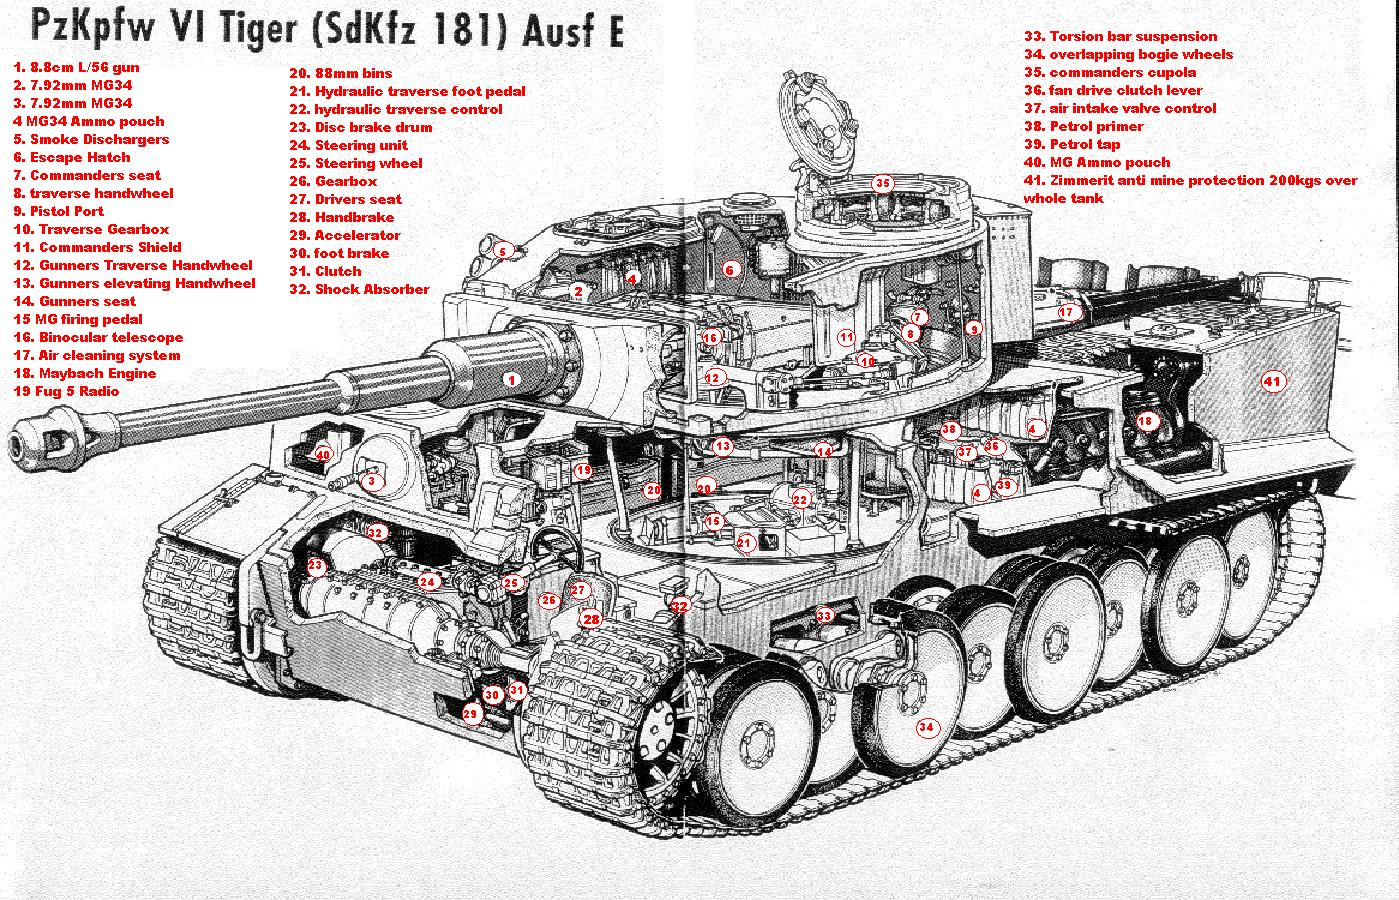 http://images.wikia.com/worldwar2andtanks/images/f/f2/Cutaway1.jpg